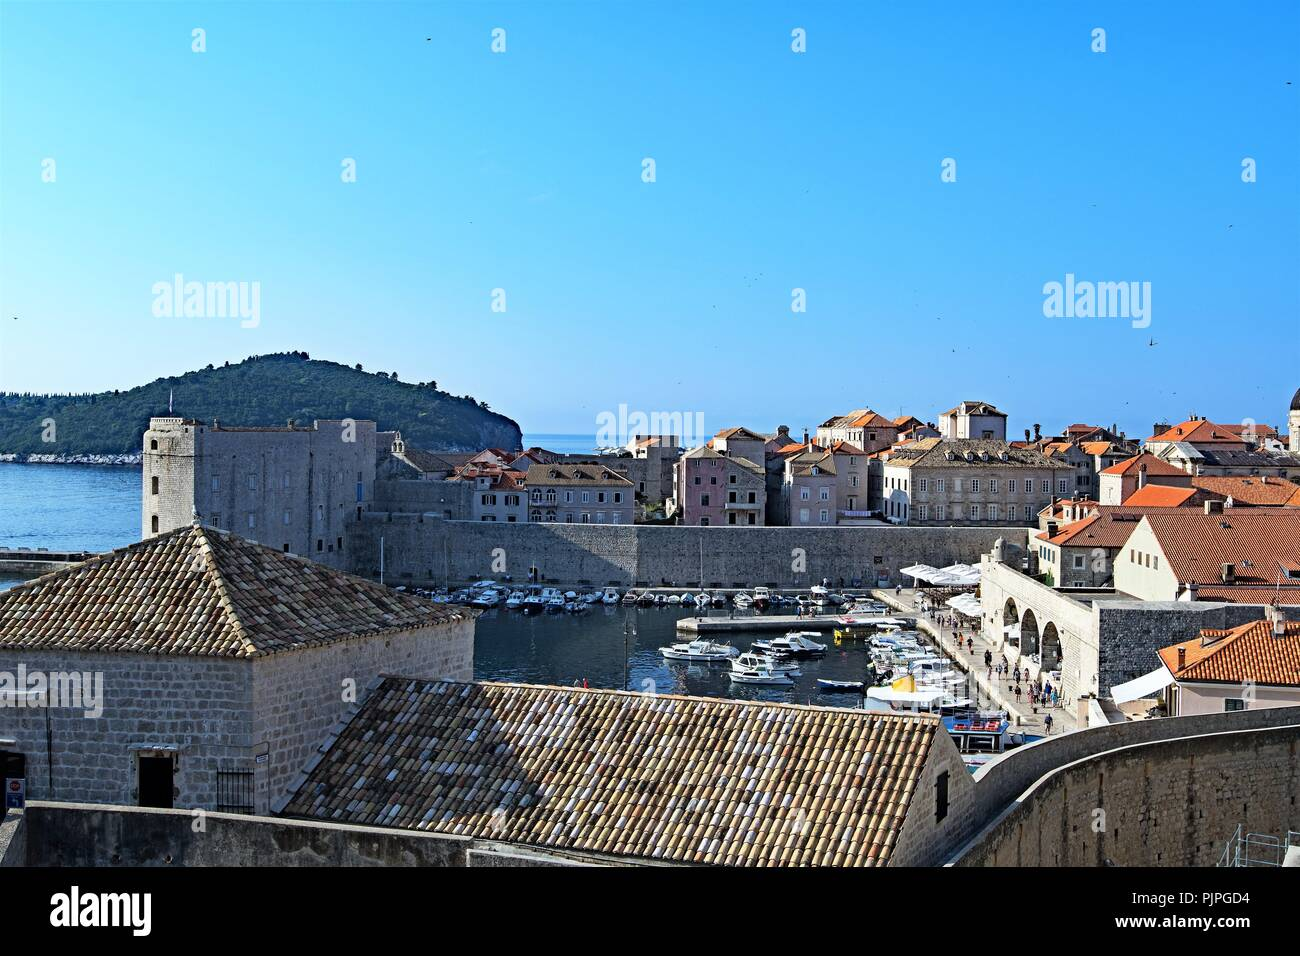 Views of the harbour entrances to Dubrovnik Old town, Croatia. - Stock Image